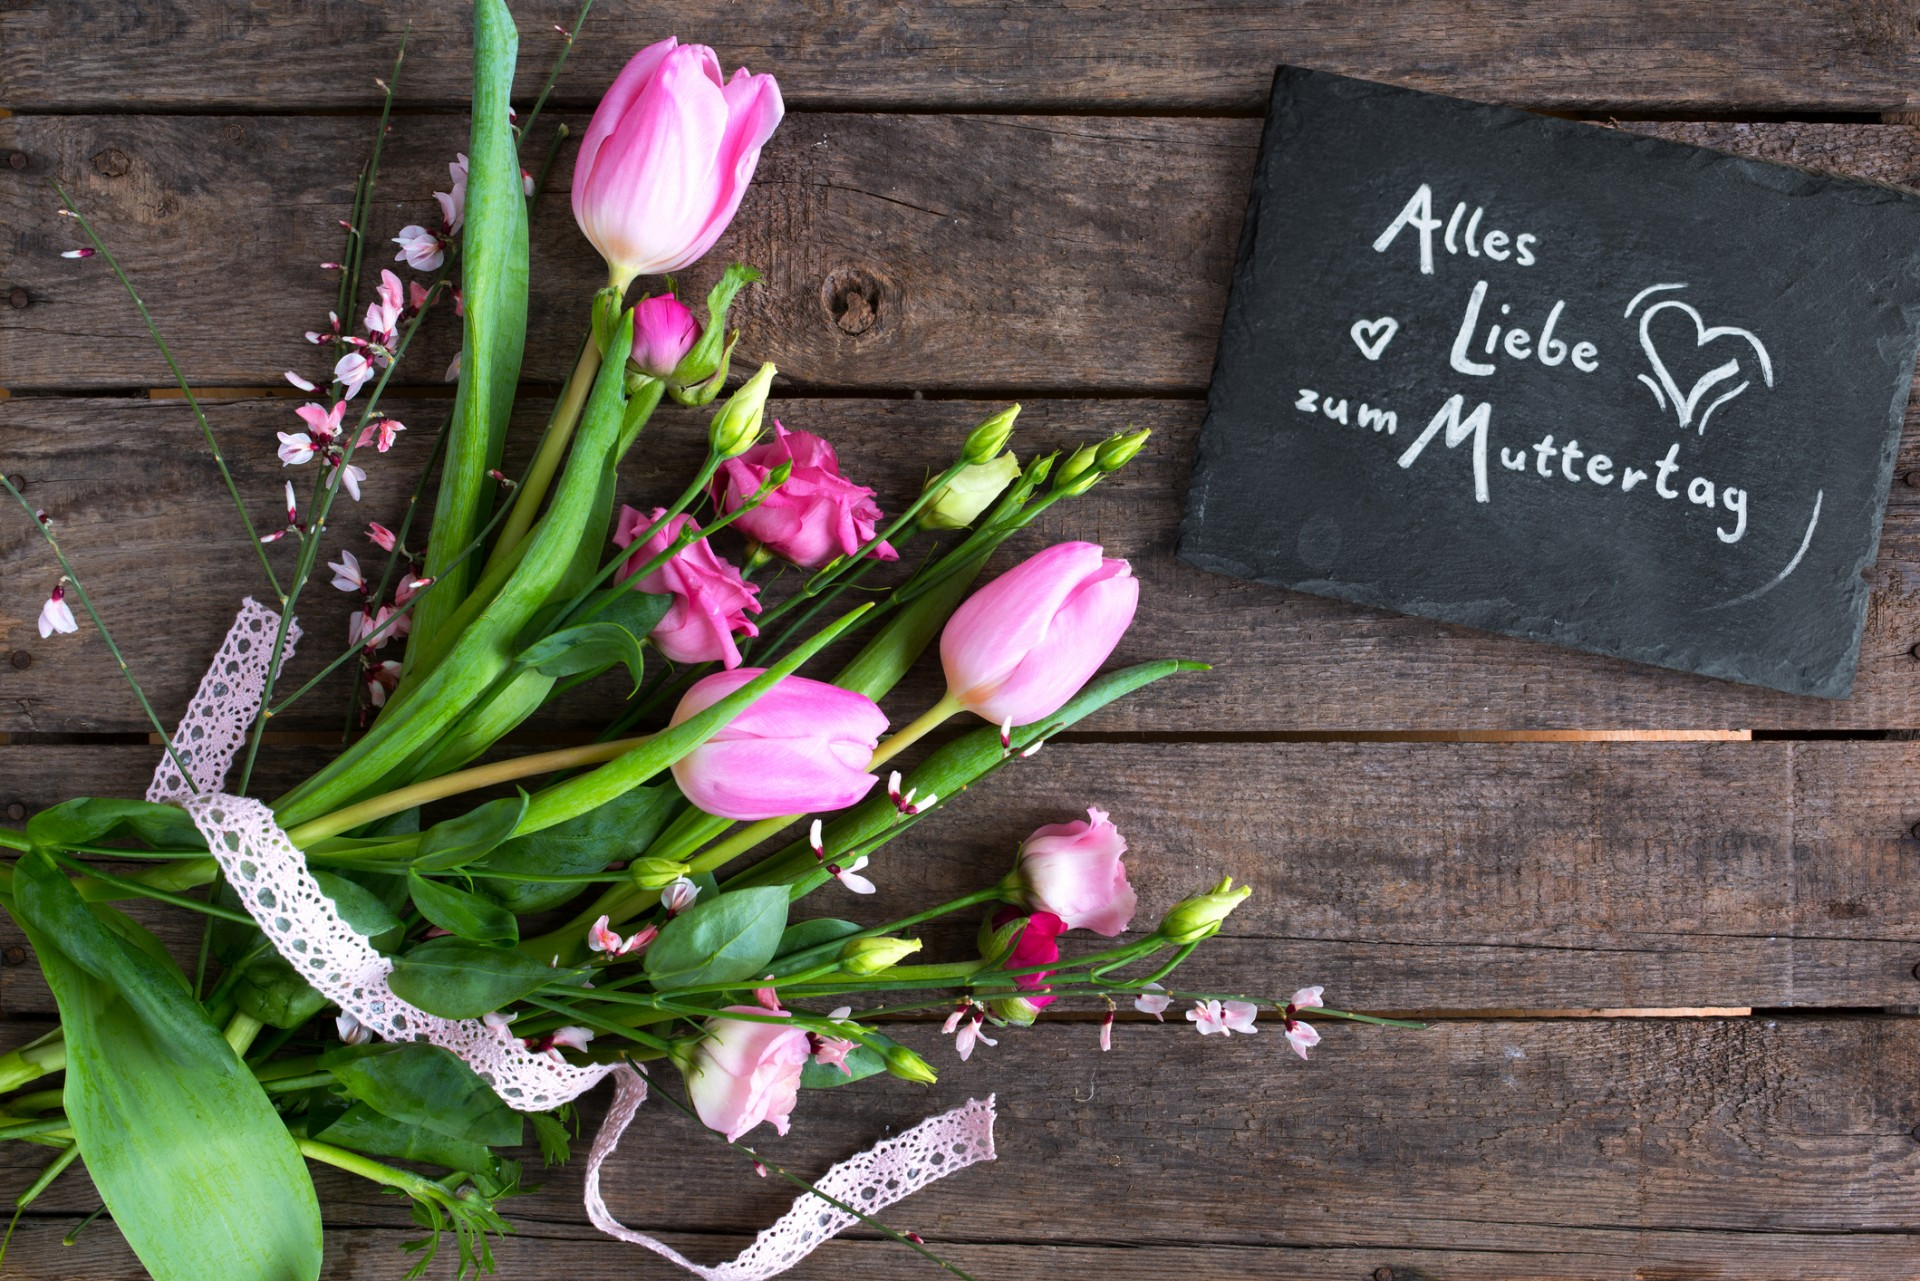 Loving mothers day greetings with a bunch of spring flowers and text on a slate plate with rustic wooden background (Loving mothers day greetings with a bunch of spring flowers and text on a slate plate with rustic wooden background, ASCII, 116 compon